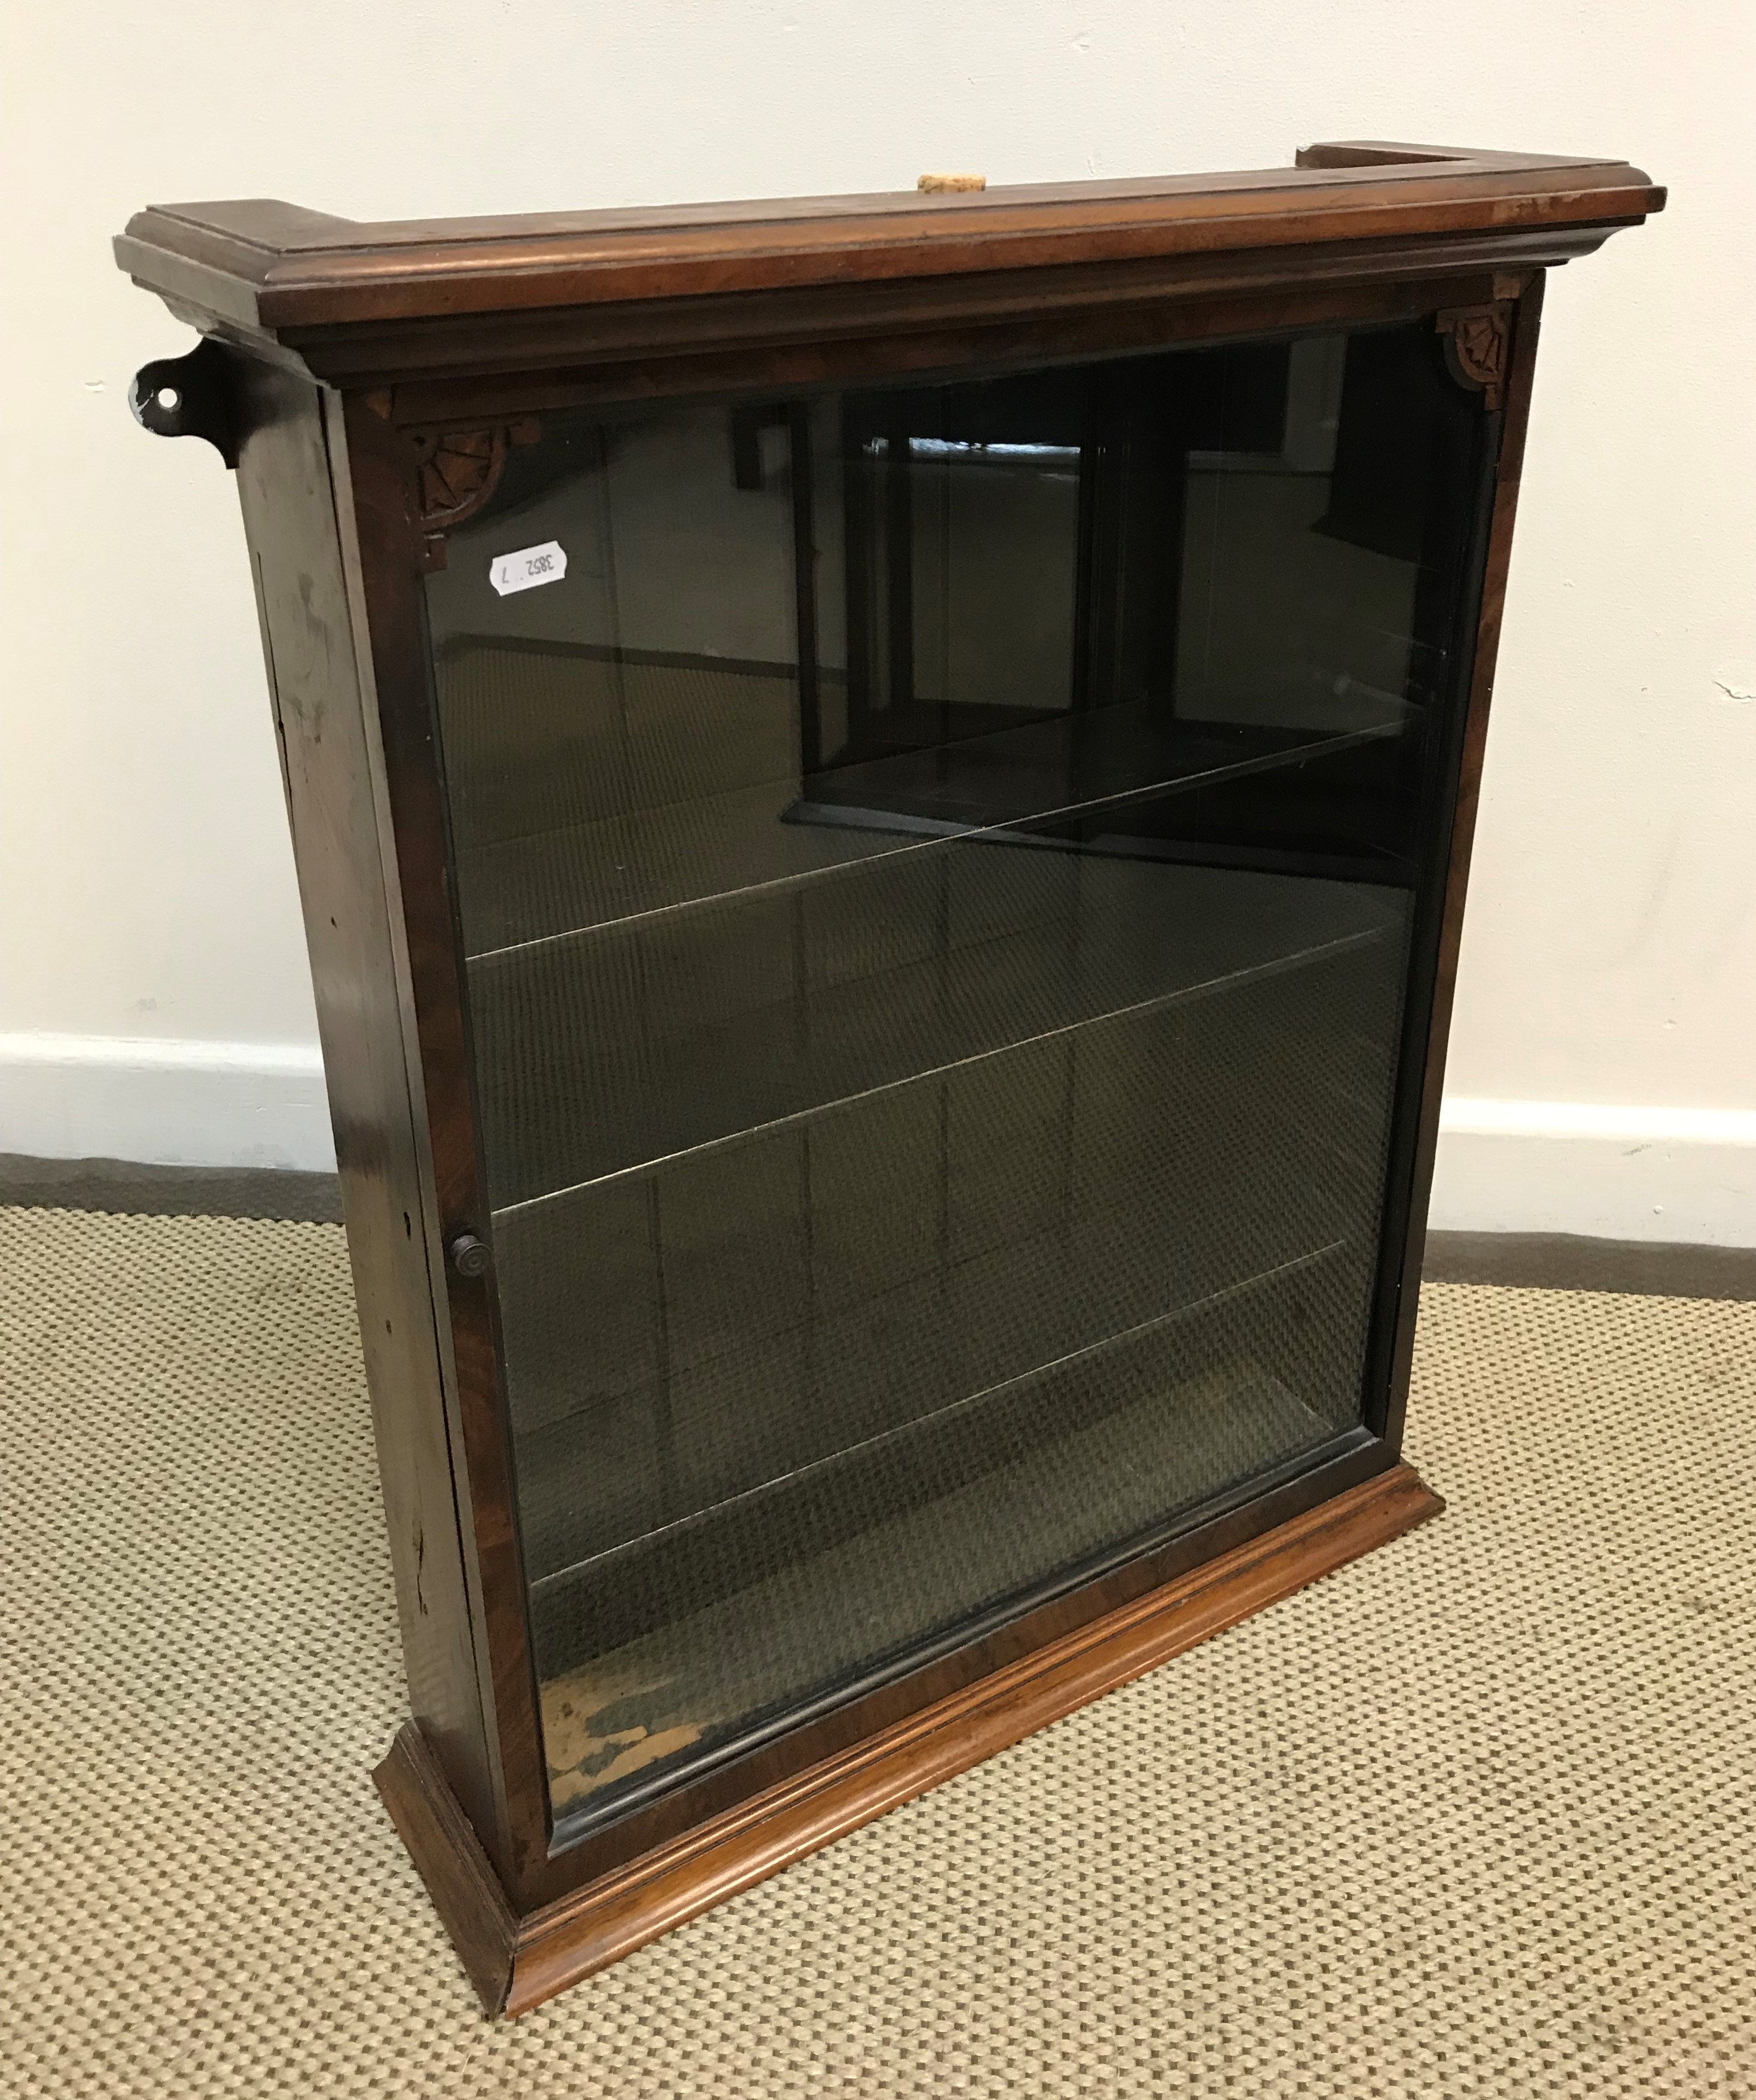 A late Victorian mahogany framed hanging wall cabinet with single glazed door enclosing adjustable